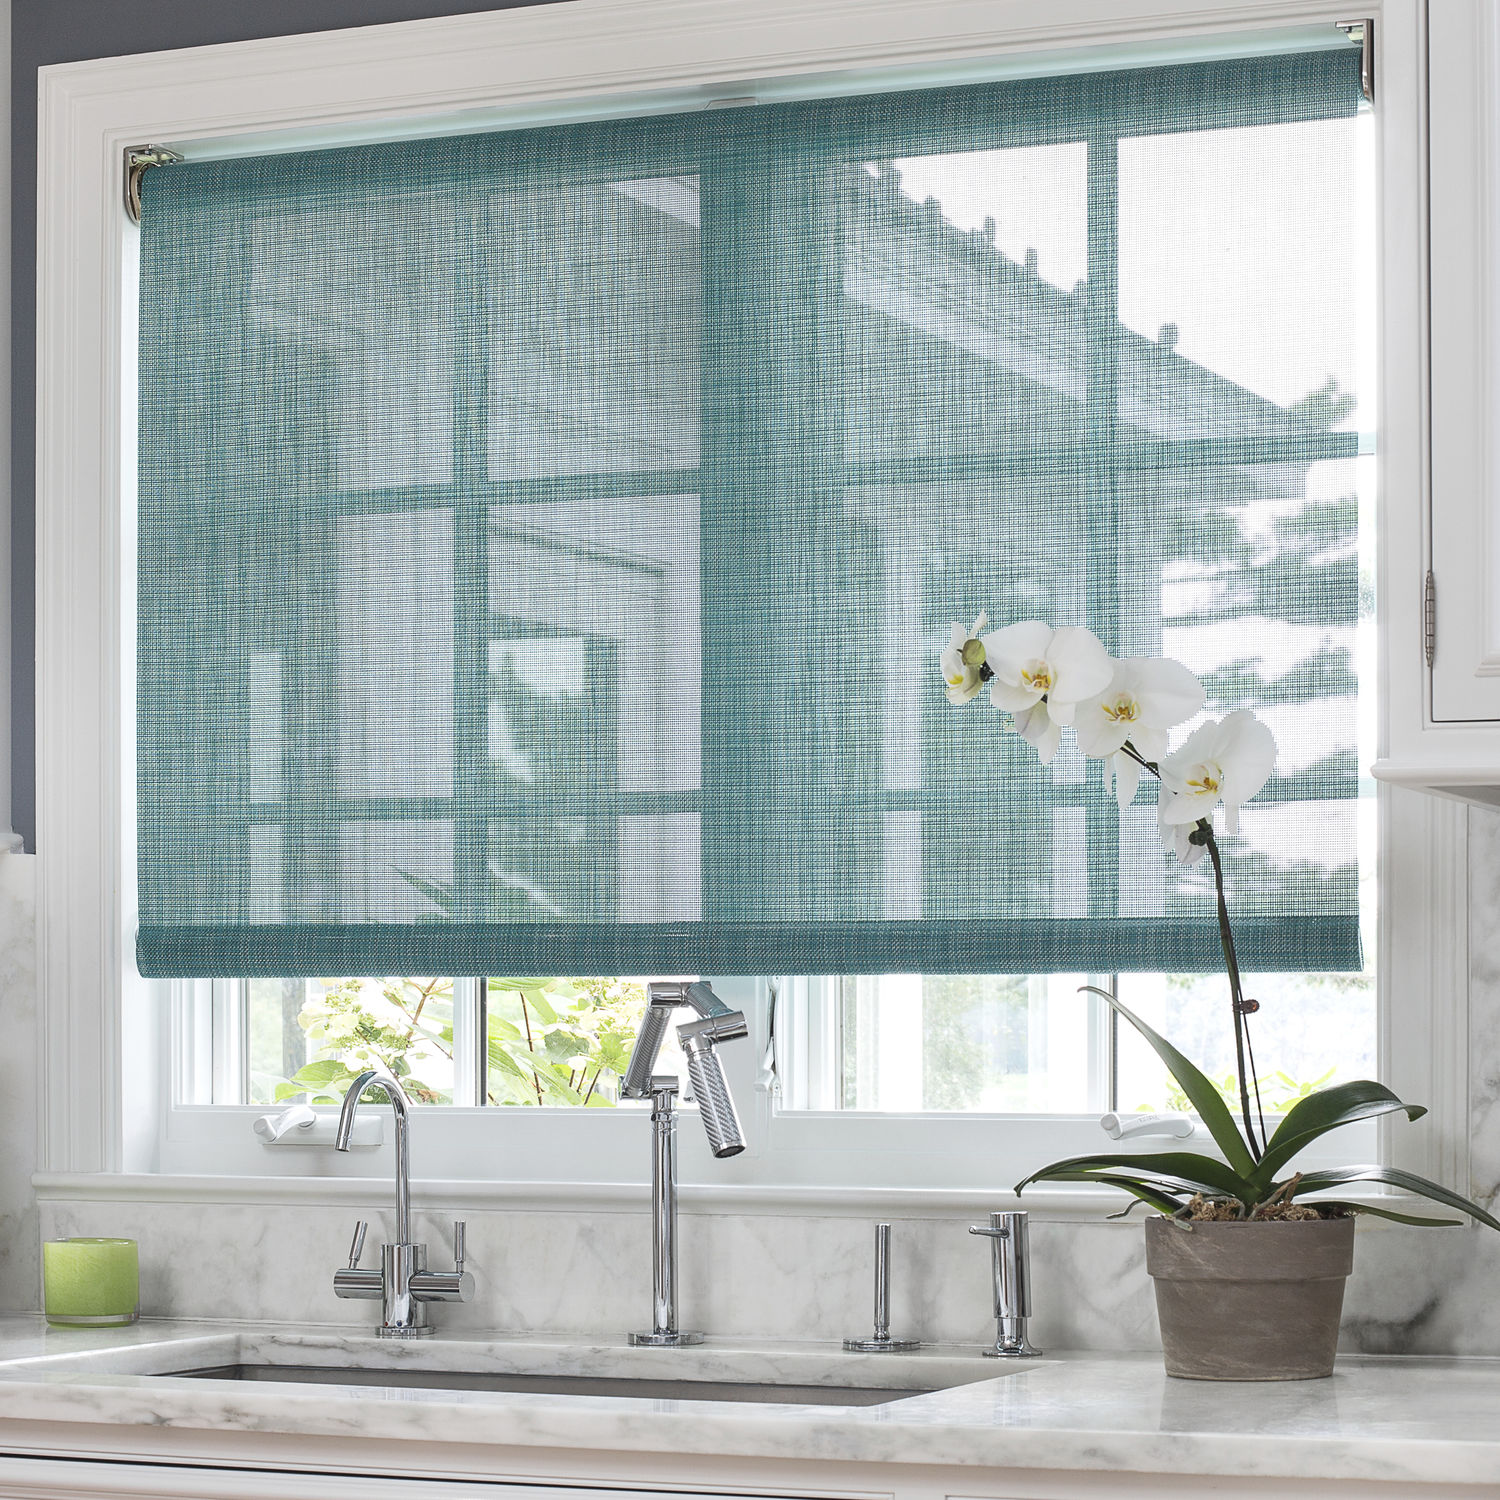 shades window blinds fashions next toronto buy catalog sunproject commercial in amazing